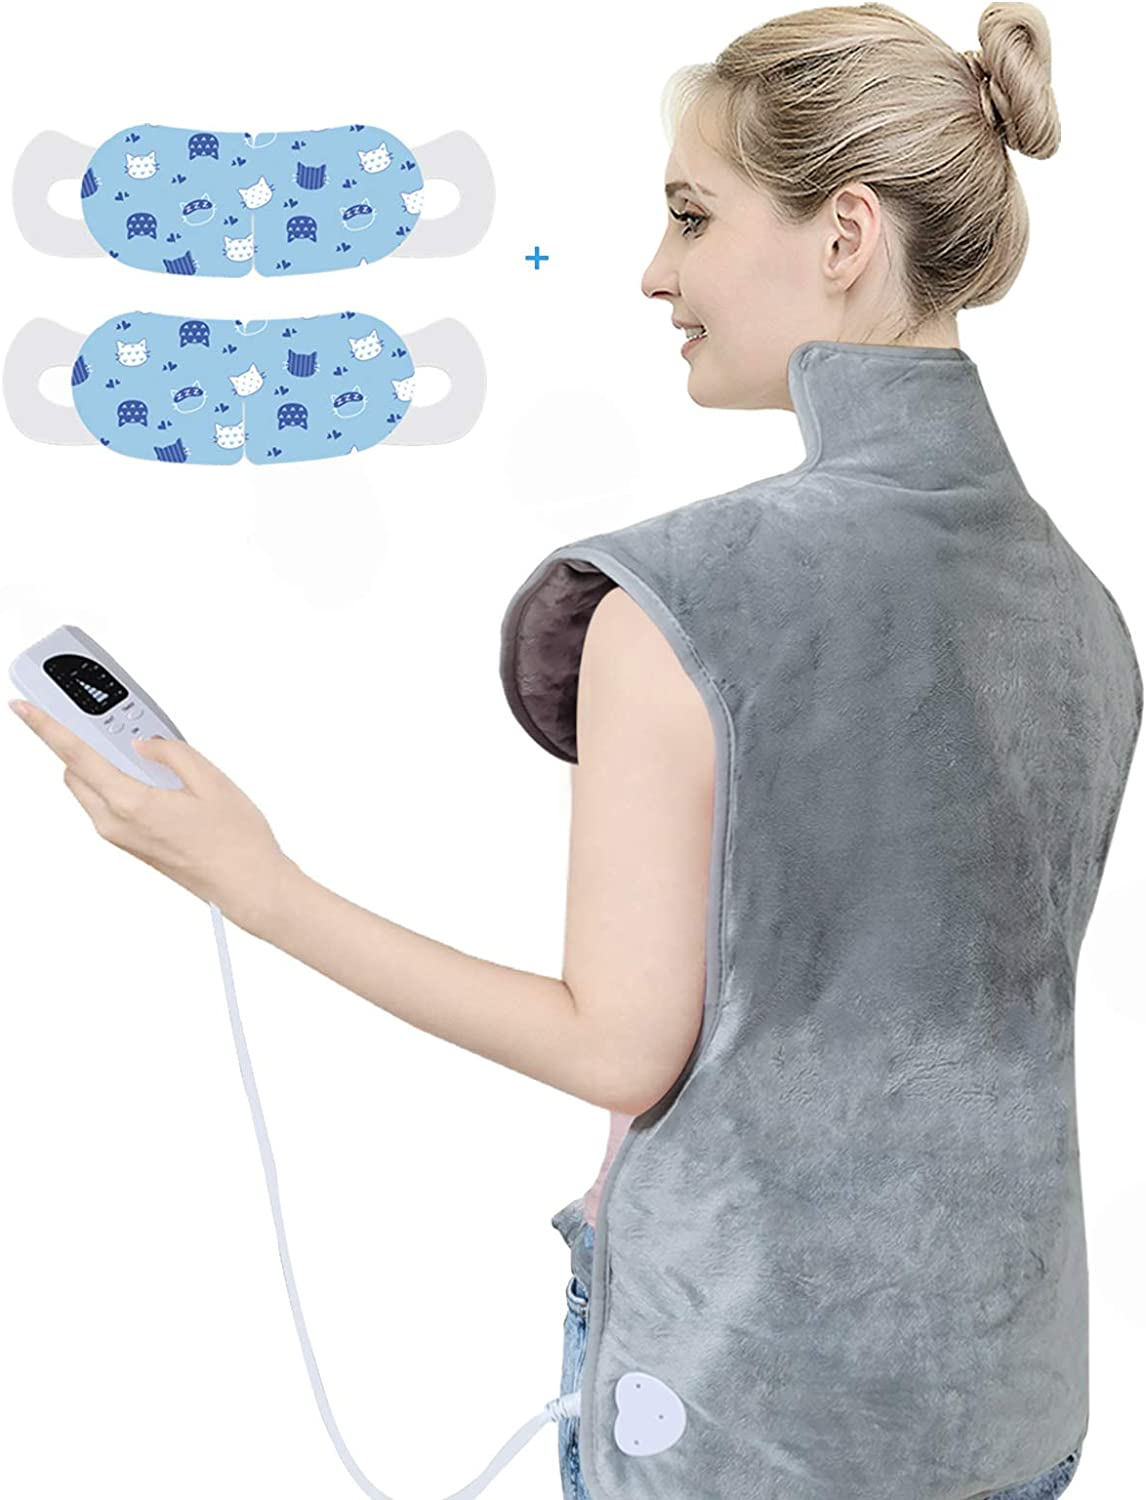 Heating Pad for Back Pain Relief, 37